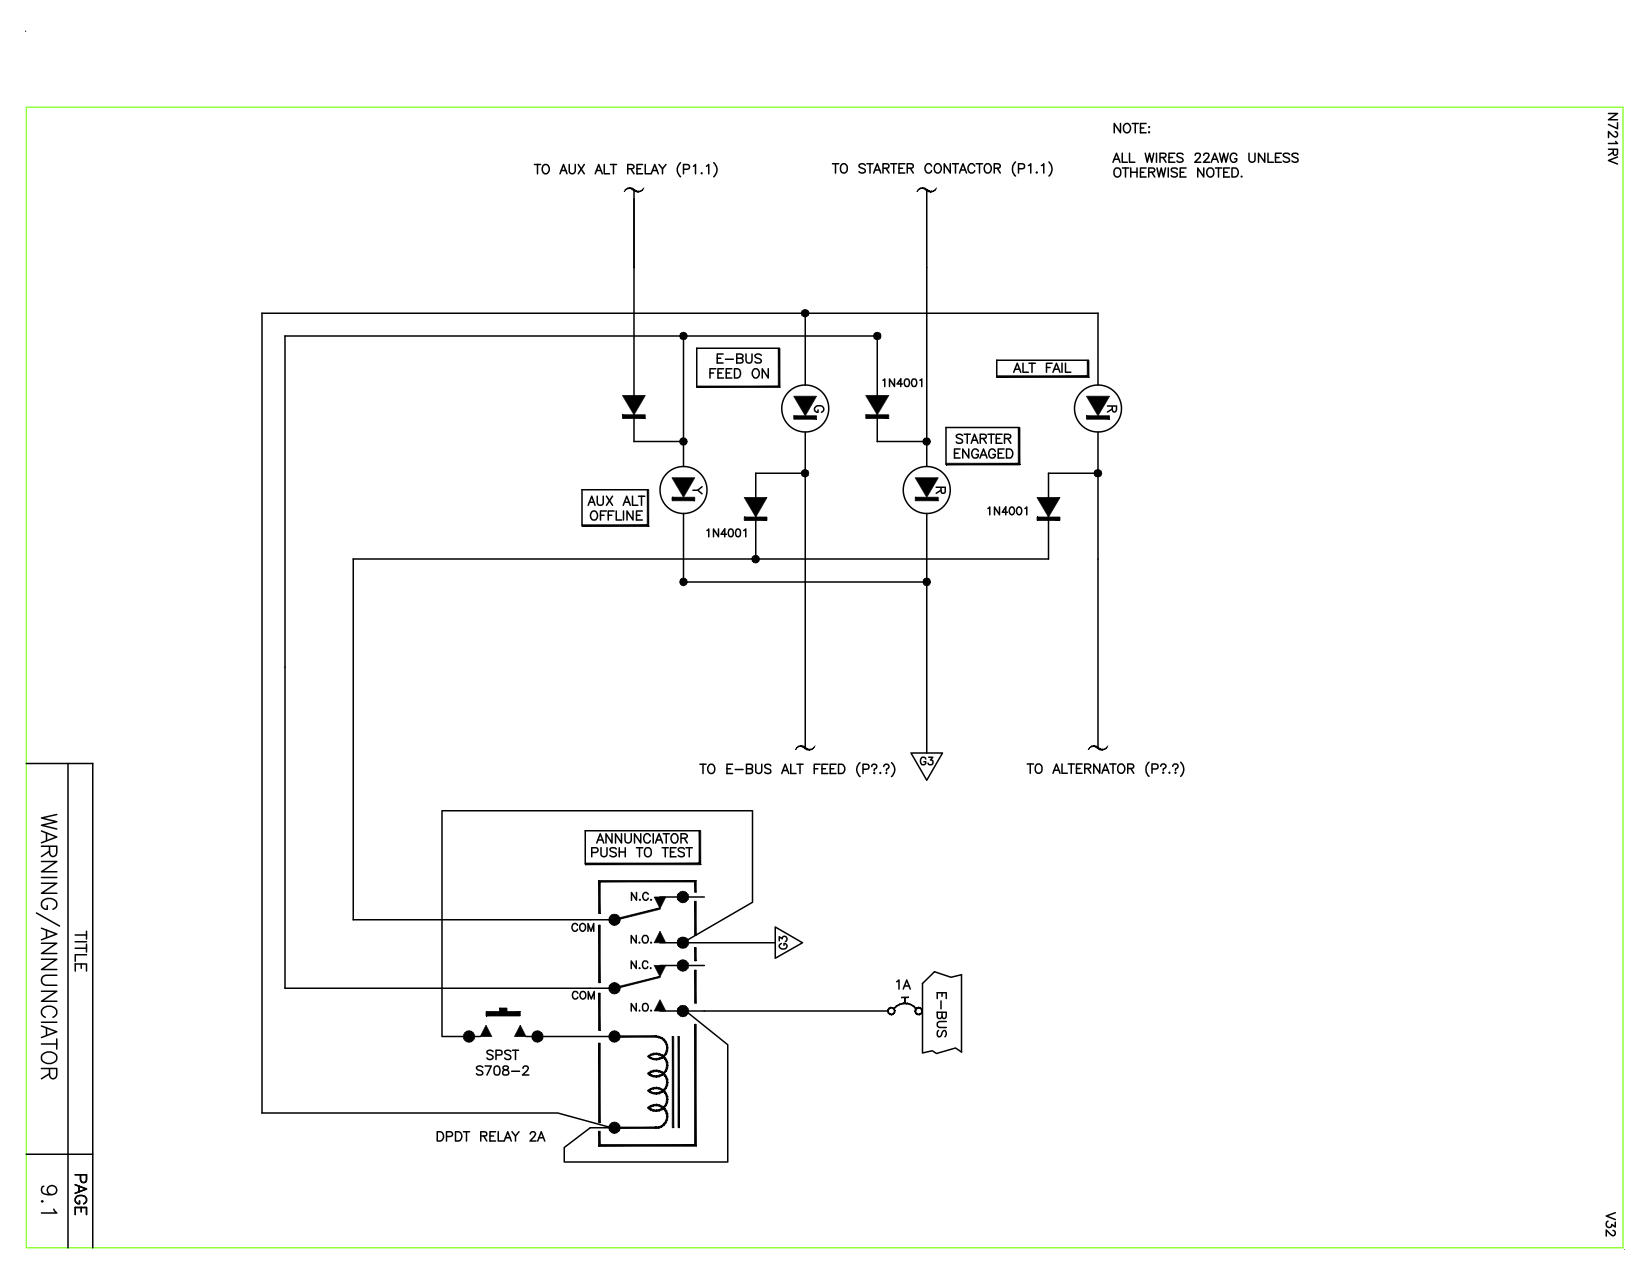 Wiring Diagram Ptt Switch : Aeroelectric list archive browser